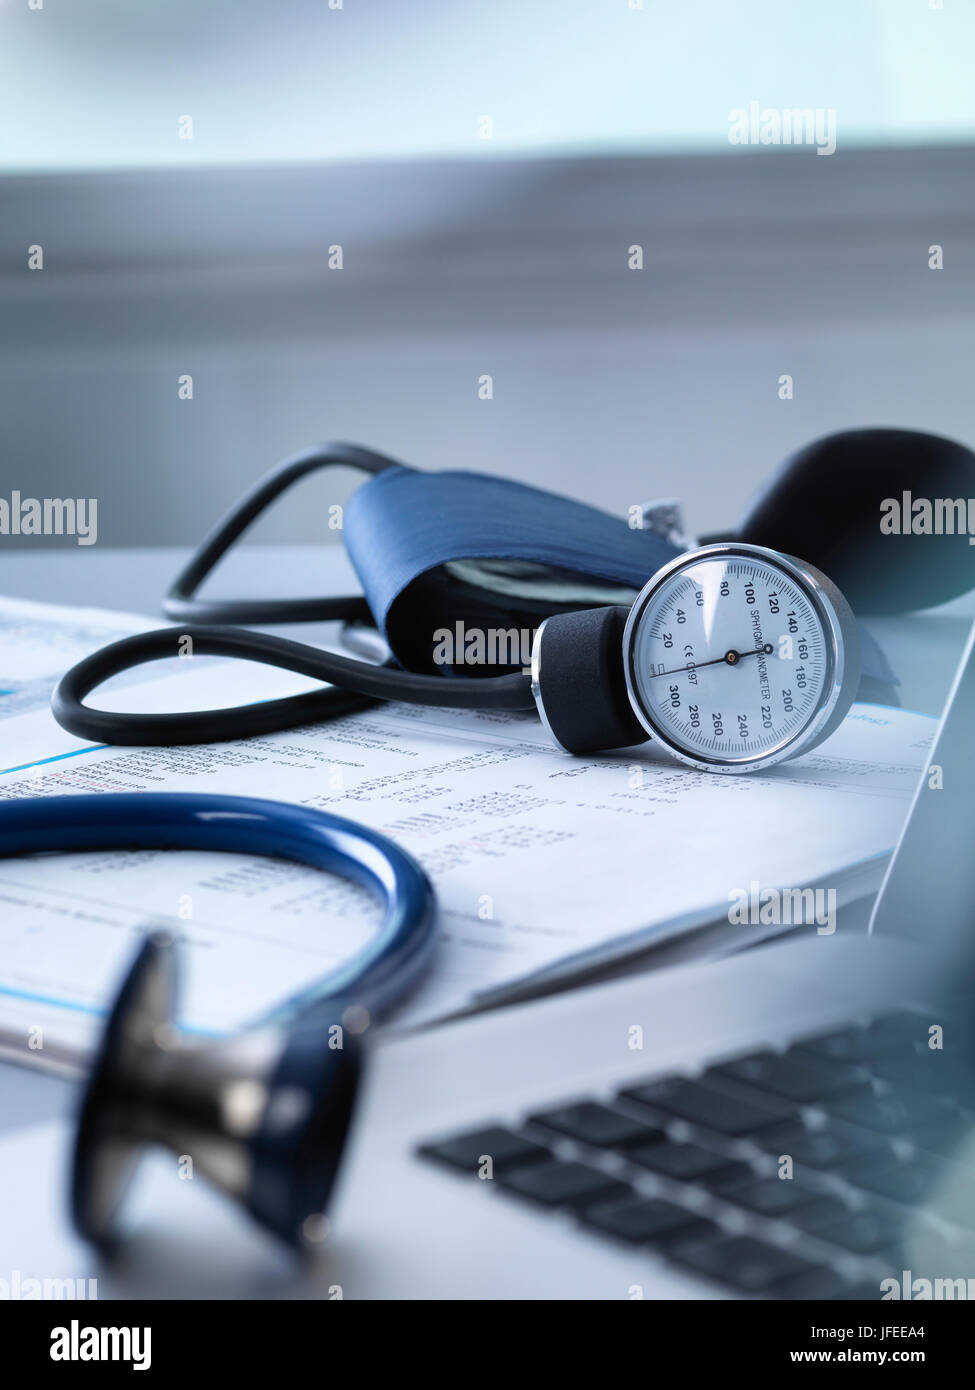 Blood pressure gauge and stethoscope sitting on a doctors desk. - Stock Image